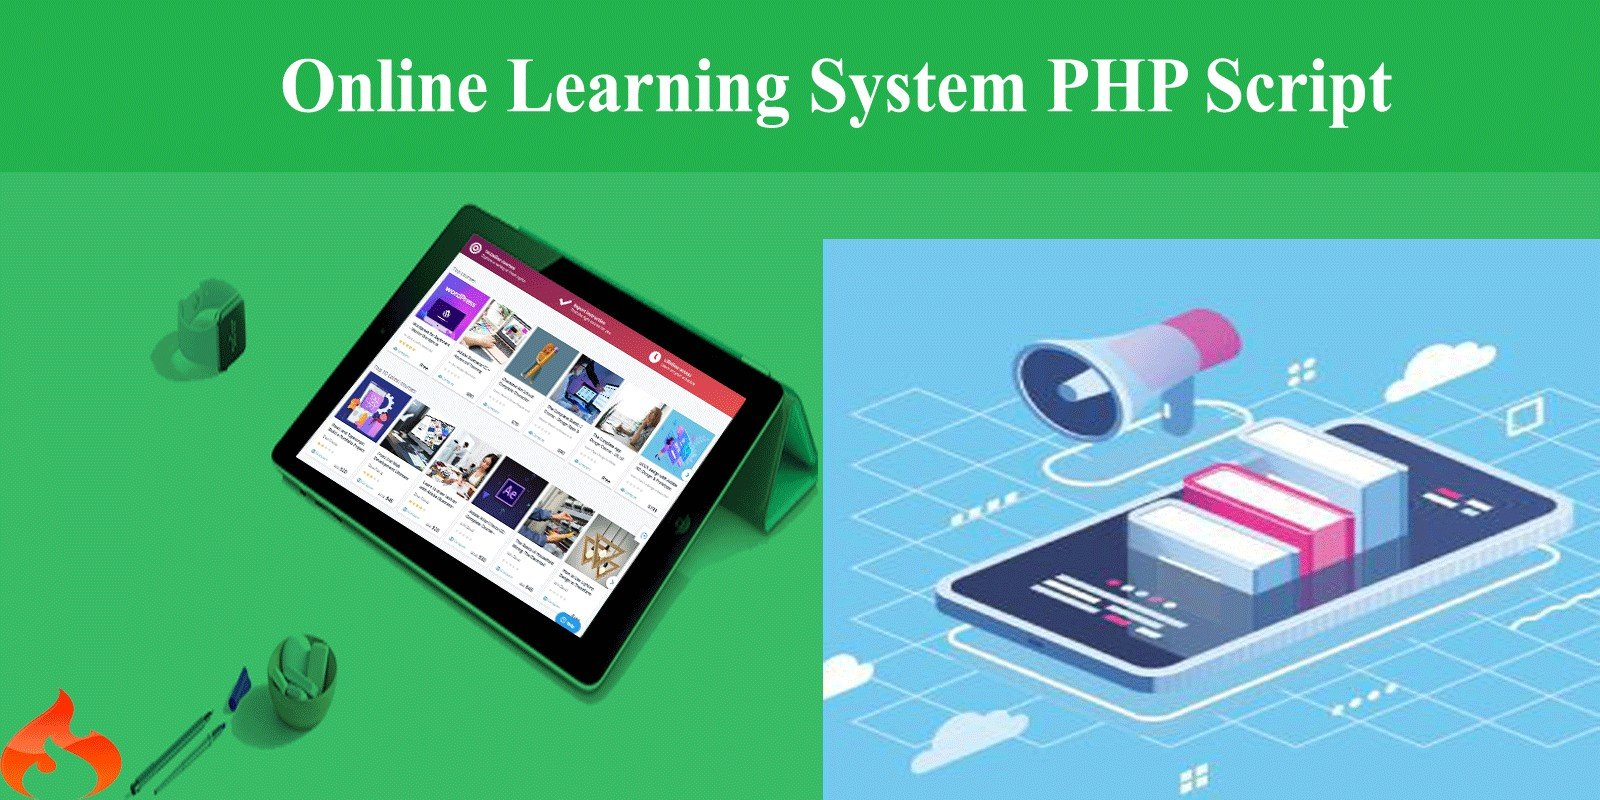 Online Learning System PHP Script